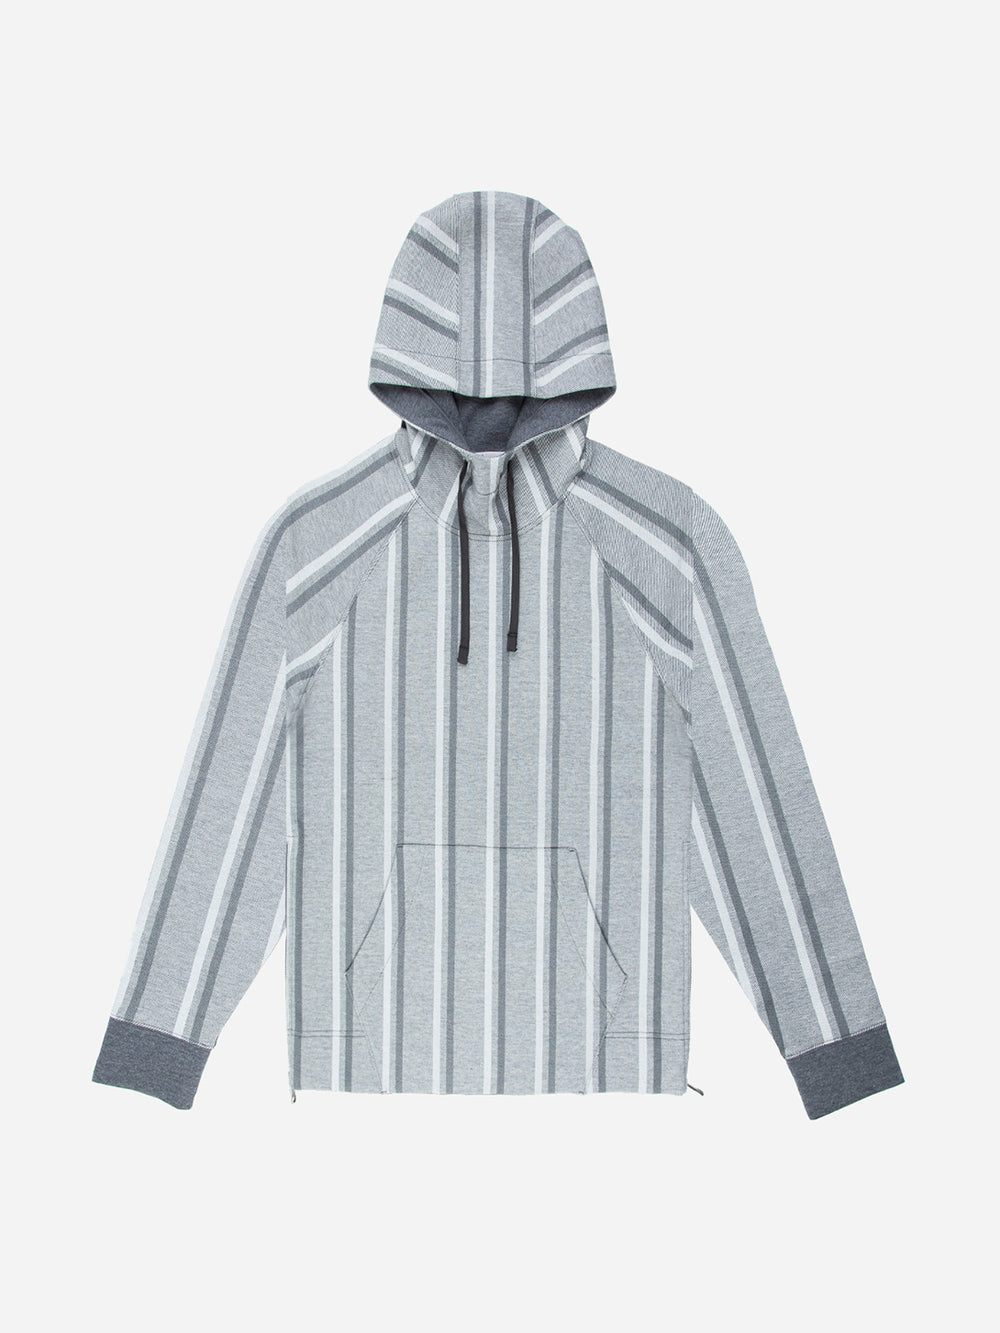 GREY H STRIPE hoodie for men ons clothing rover hoodie black friday deals